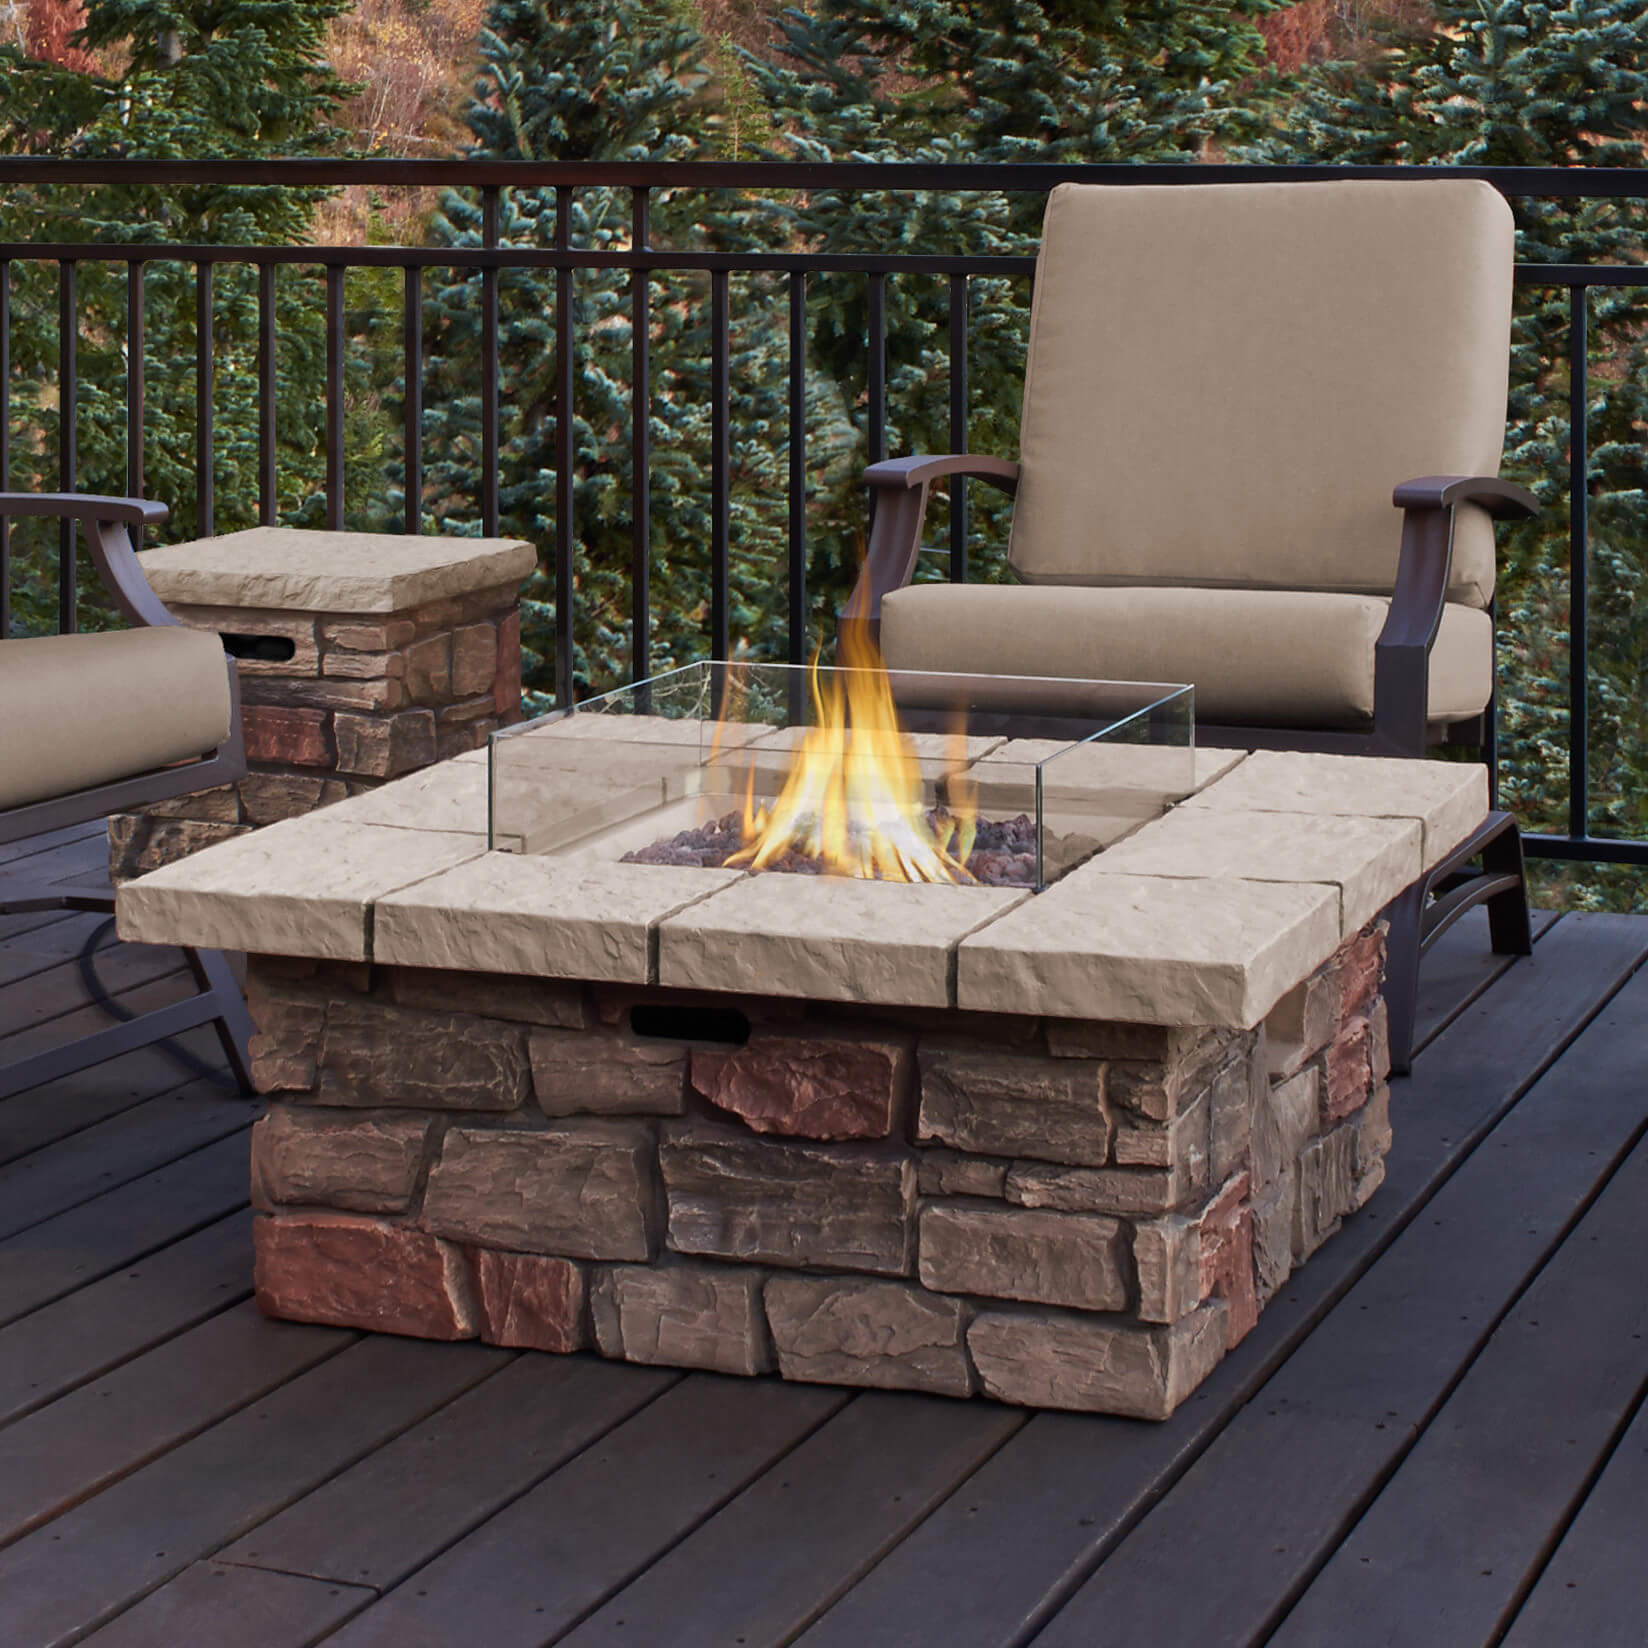 Top 15 Types Of Propane Patio Fire Pits With Table Buying Guide inside measurements 1648 X 1648